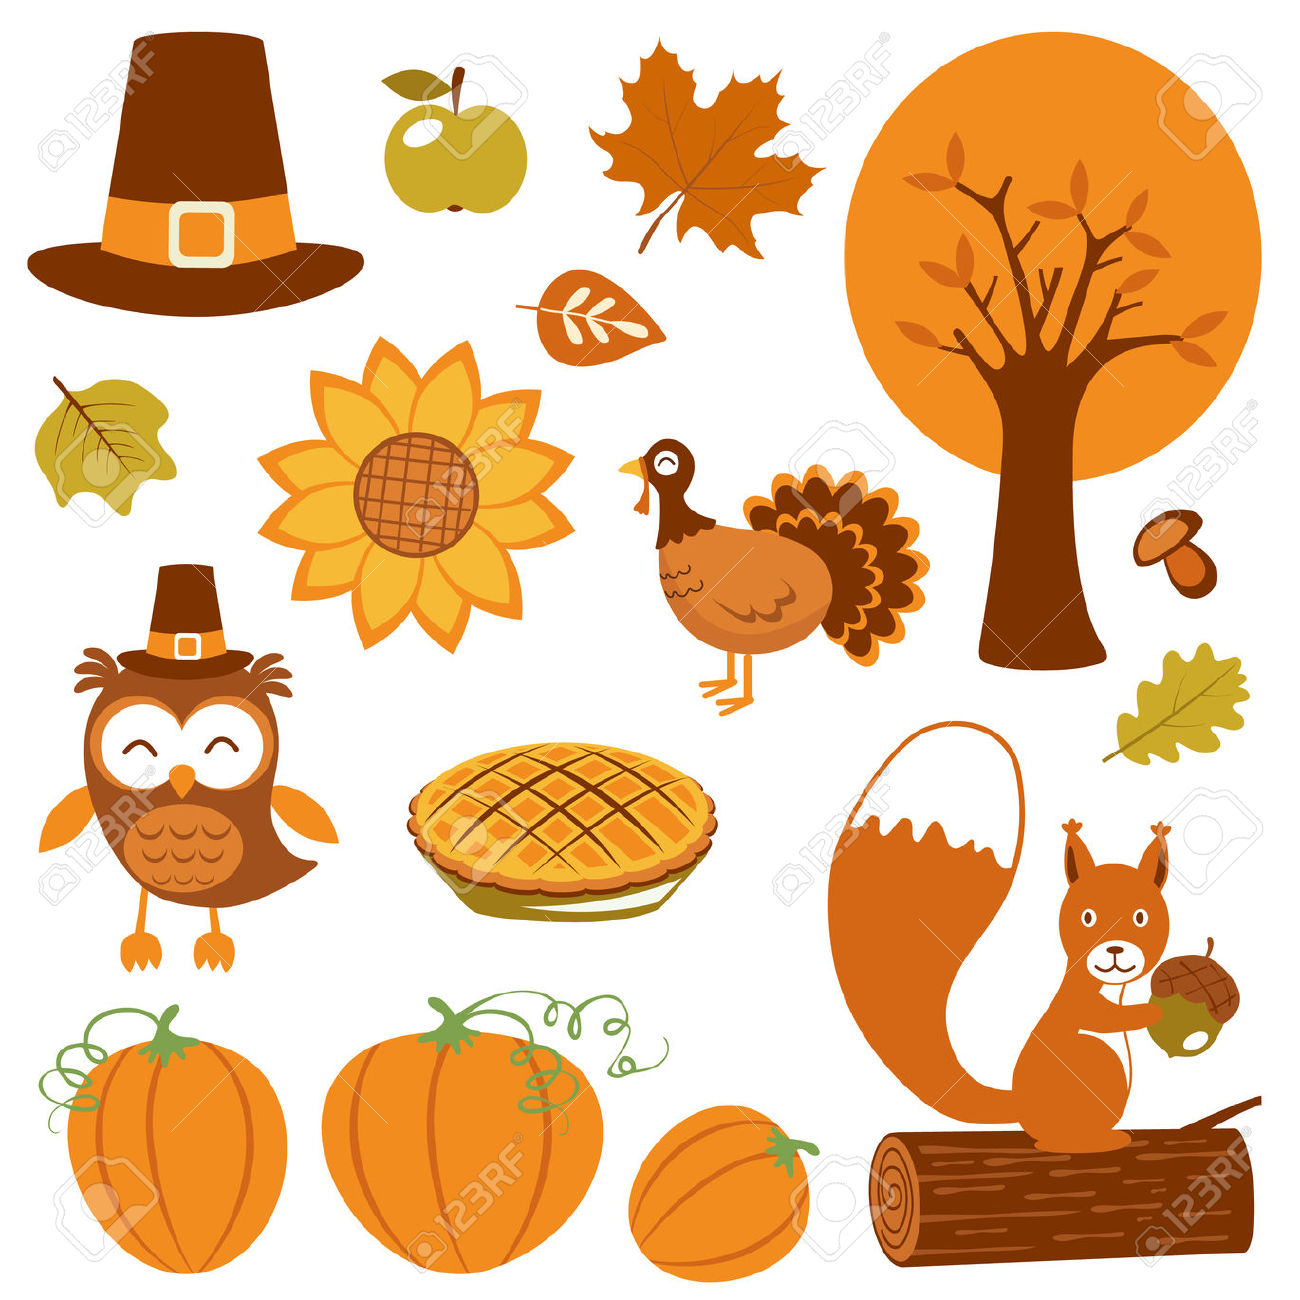 Cute pumpkin character clipart picture freeuse 8,174 Pumpkin Characters Stock Vector Illustration And Royalty ... picture freeuse